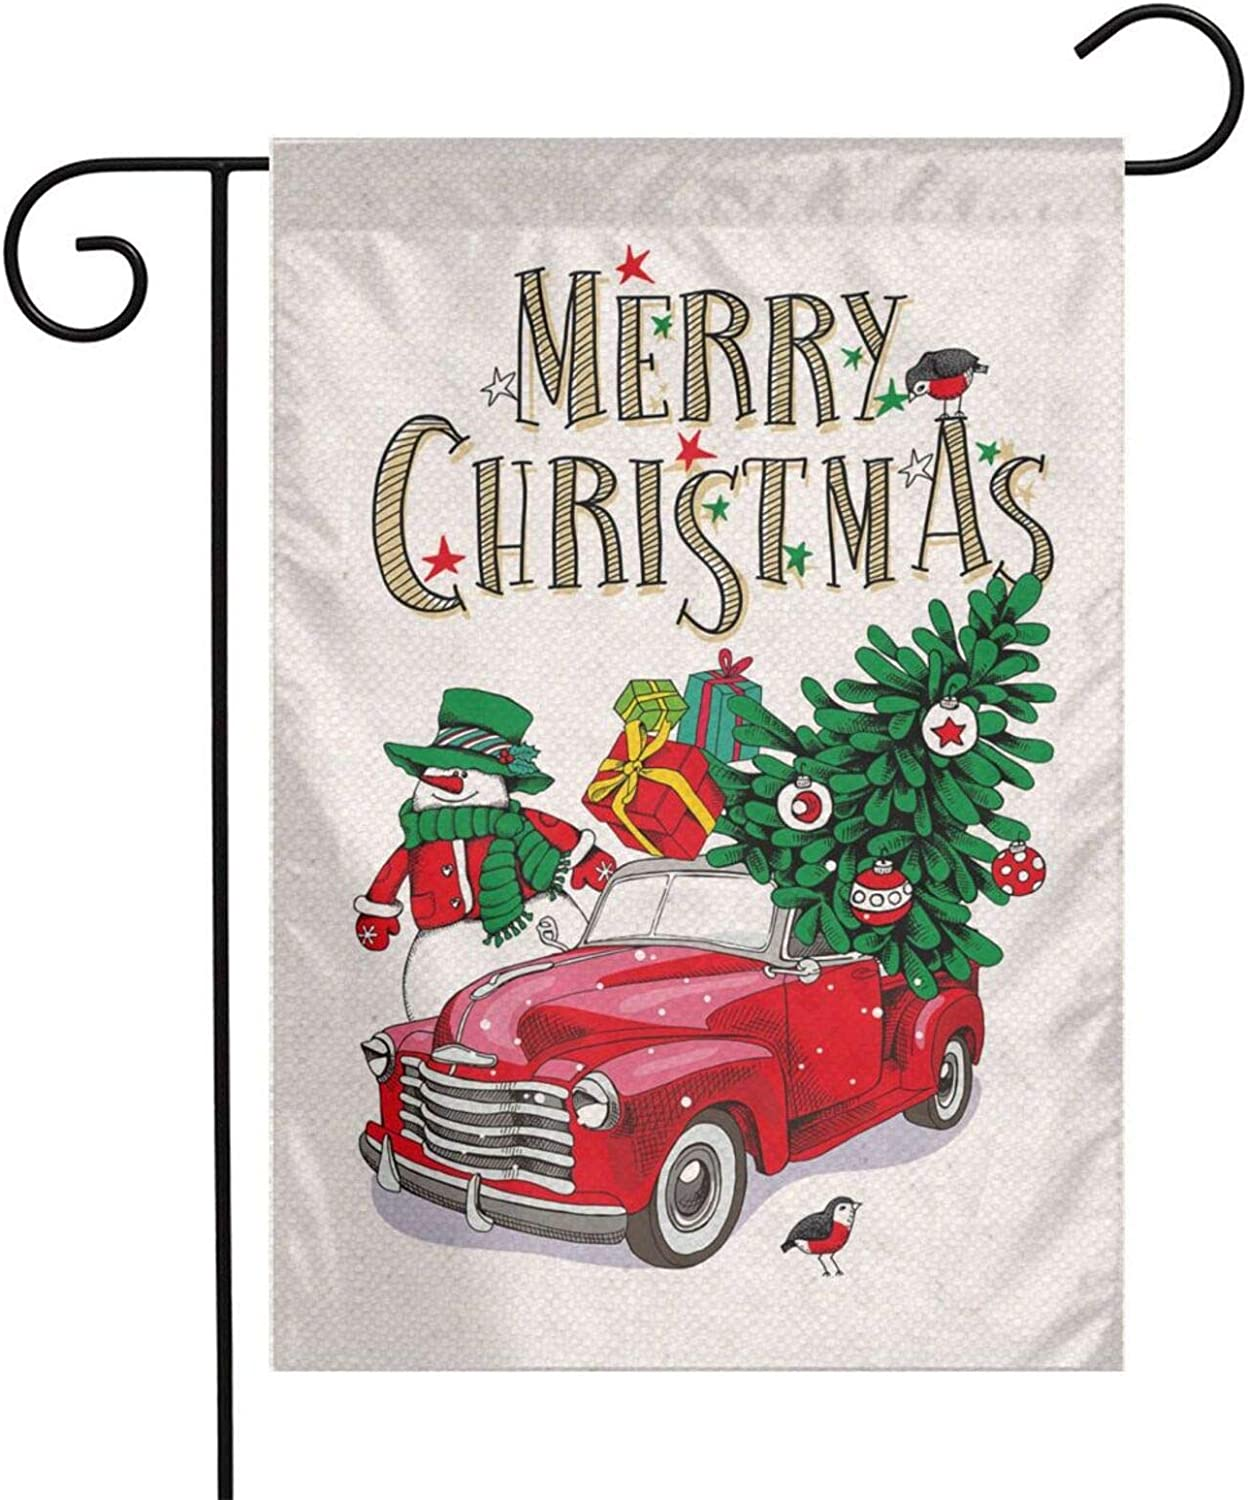 YANGHOME Merry Christmas Snowman Red Truck Tree Gift Bird Burlap Garden Porch Lawn Flag Farmhouse Decorations Mailbox Decor Welcome Sign 12x18 Inch Small Double Sided Flax Nylon Linen Fabric